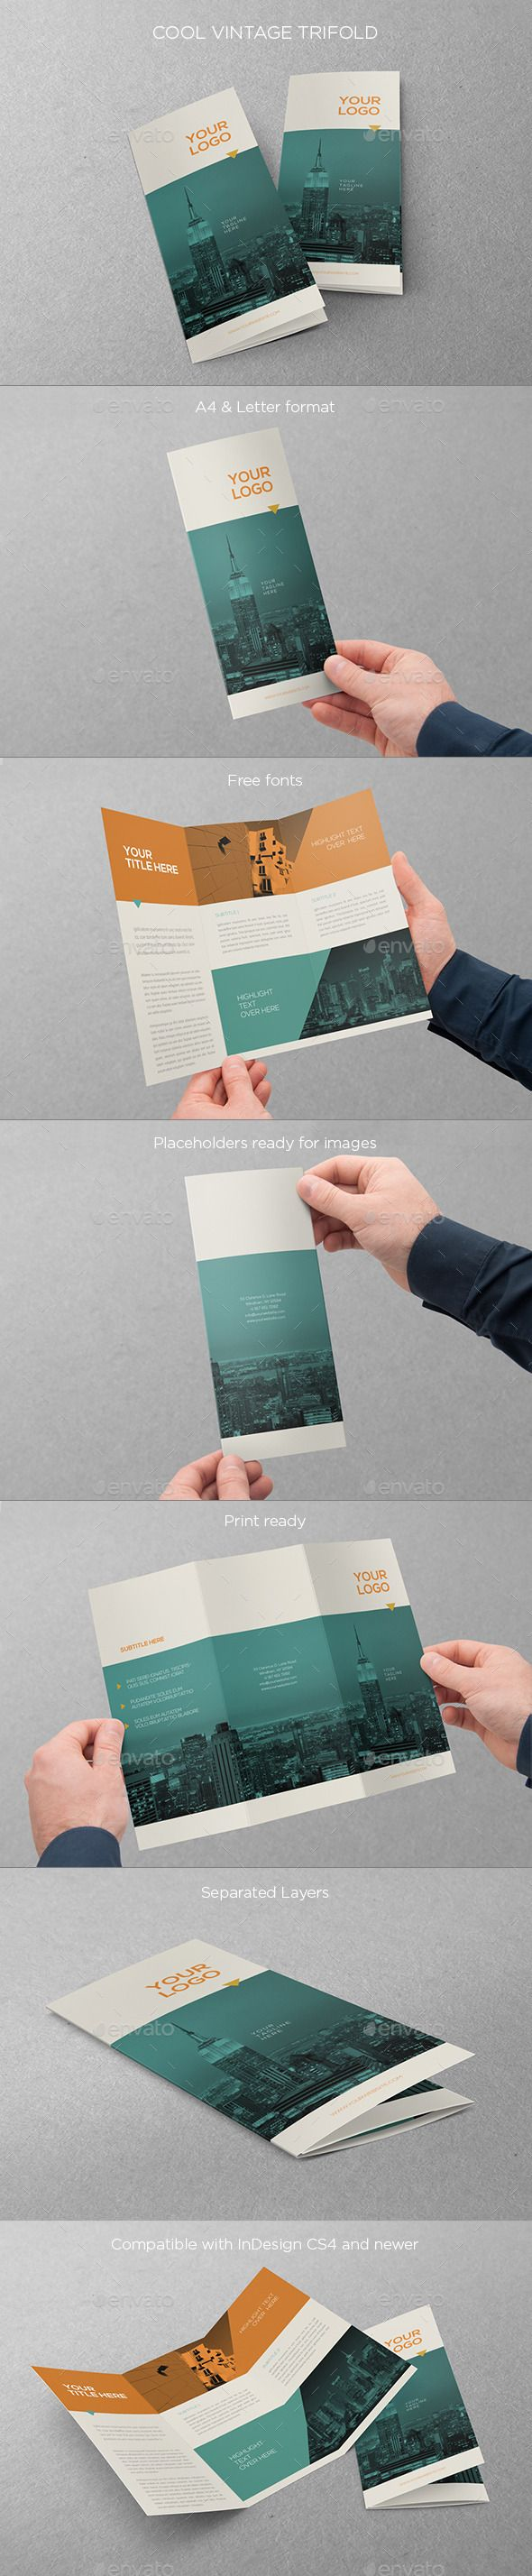 Cool Vintage Trifold Brochure Template #design #brochure Download: http://graphicriver.net/item/cool-vintage-trifold/11381311?ref=ksioks